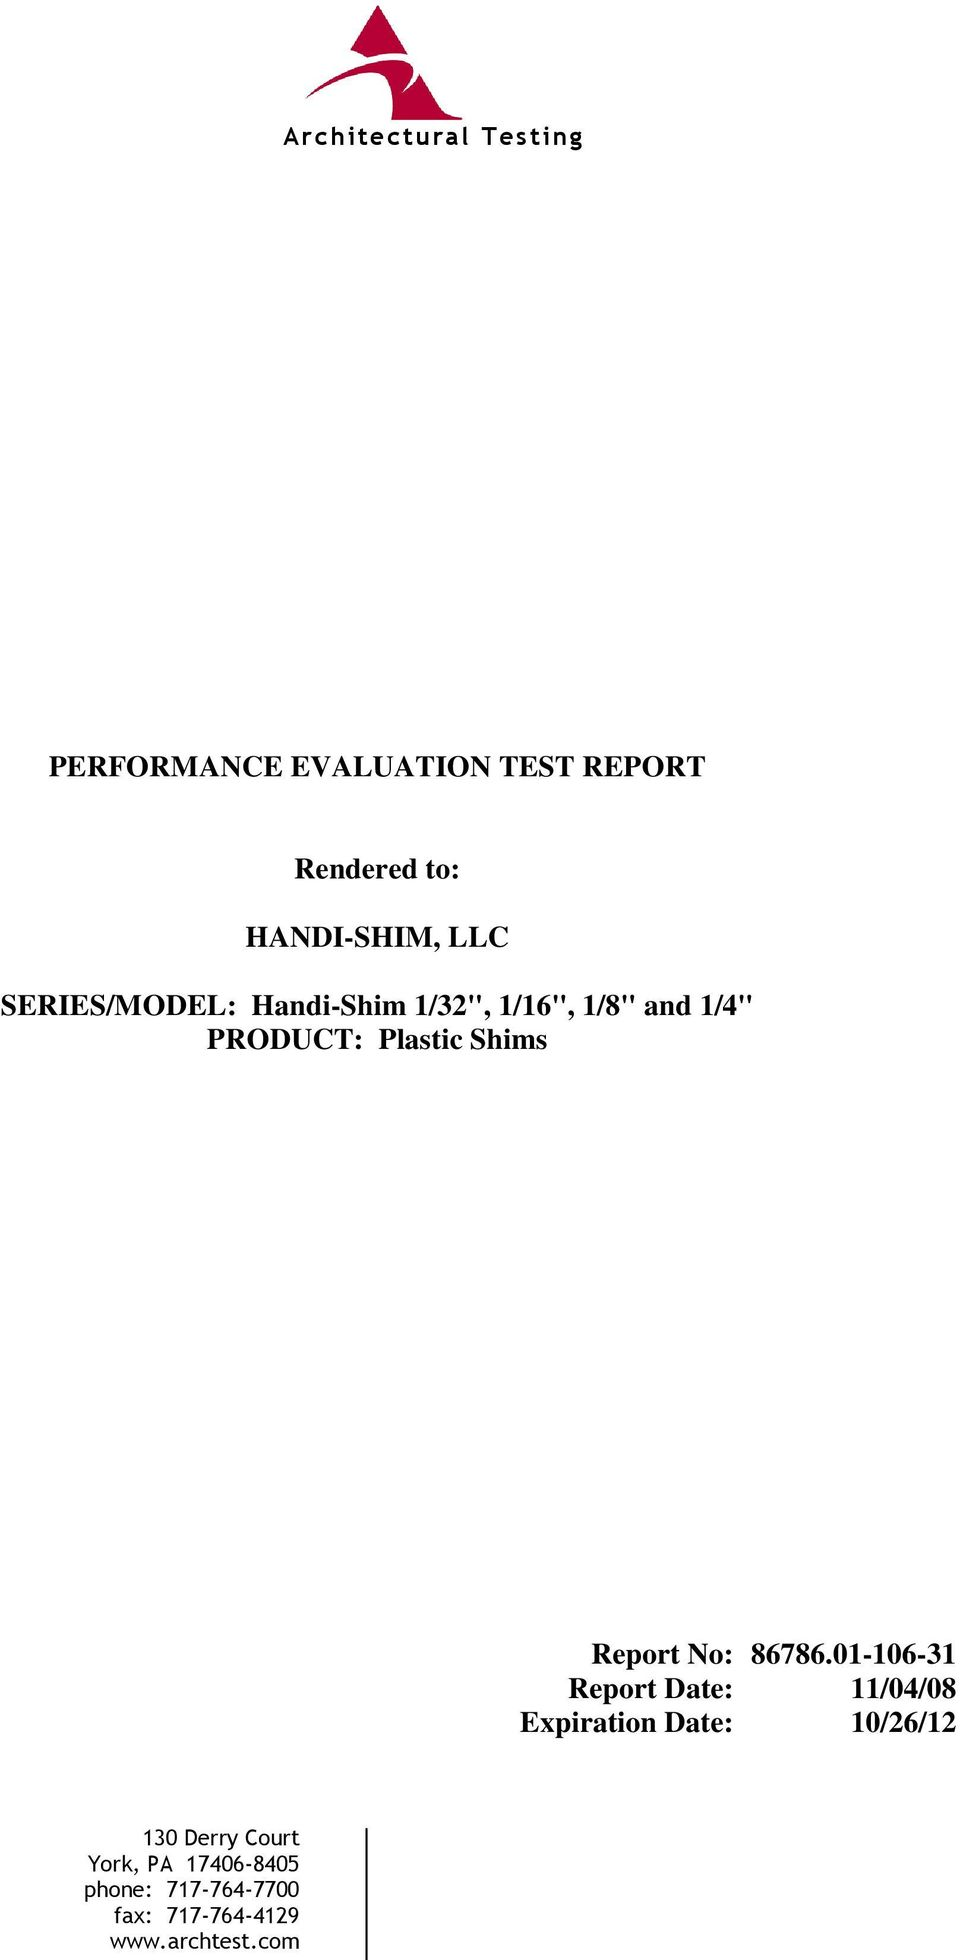 PERFORMANCE EVALUATION TEST REPORT  Rendered to: HANDI-SHIM